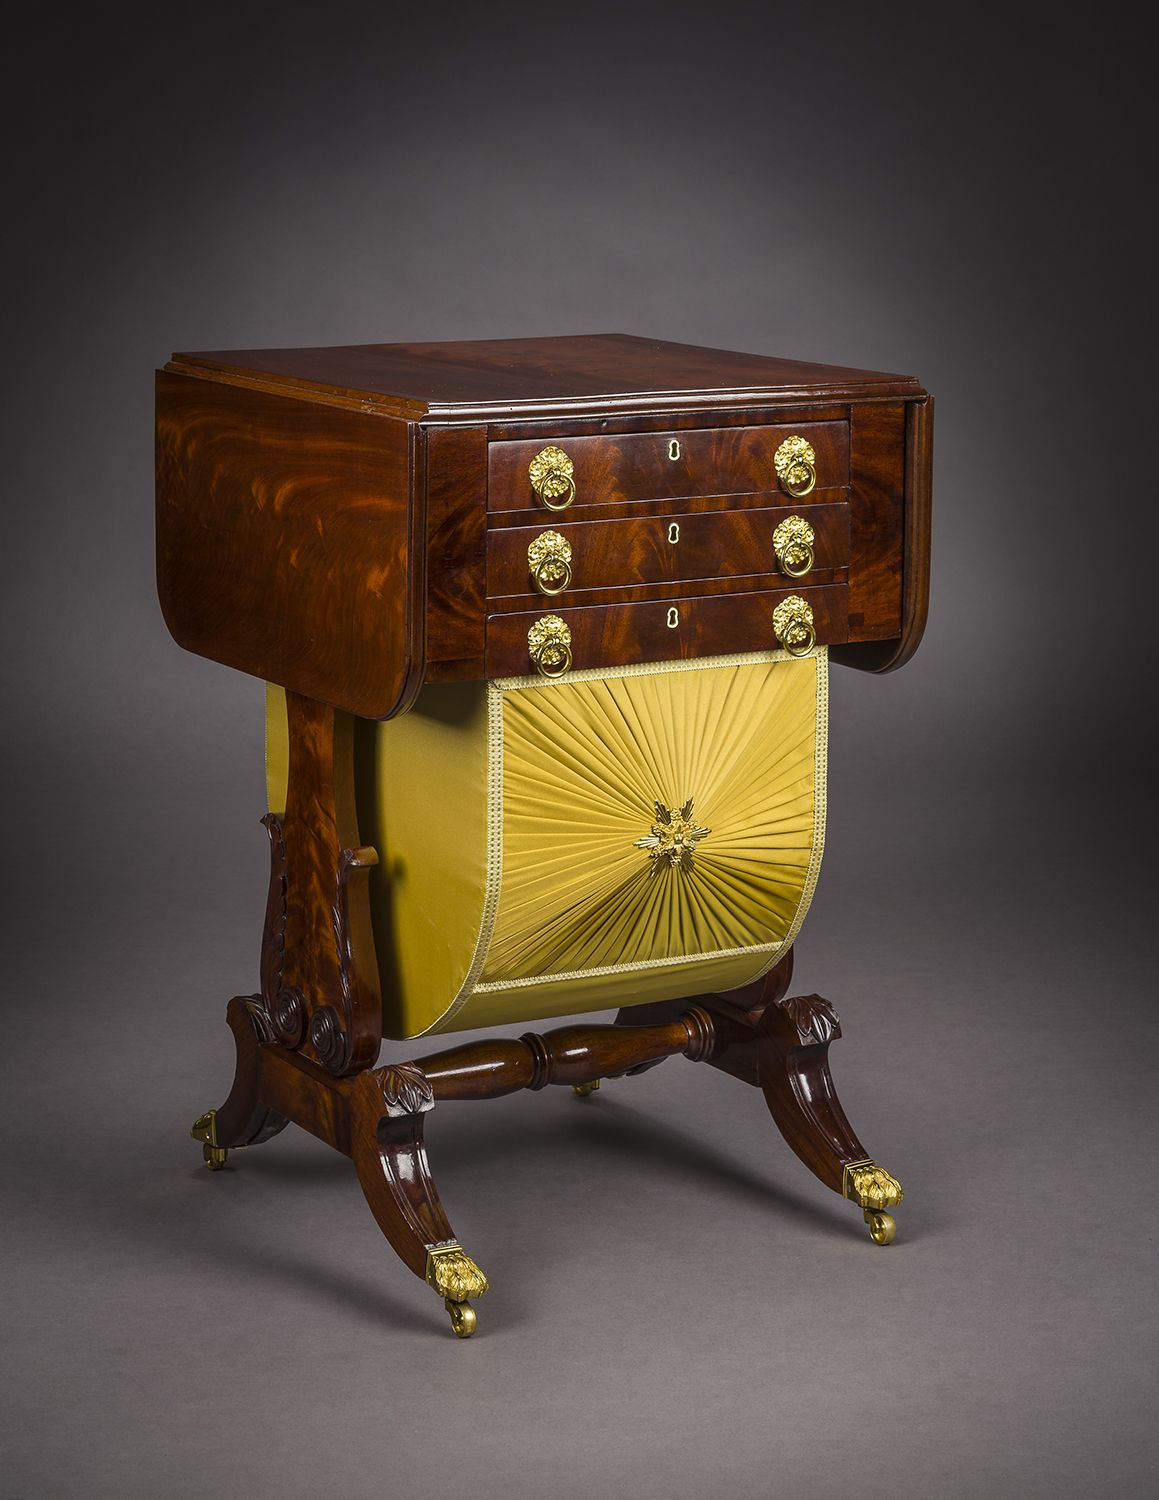 Neo-Classical Drop-Leaf Work Table with Lyre Ends, about 1828–29. Attributed to Rufus Pierce, Boston. Mahogany, with gilt-brass paw toe-caps and castors, drawer pulls, key-hole escutcheons, baize writing surface, and fabric on workbox, 28 13/16 in. high, 19 1/2 in. wide, 20 1/8 in. deep (at the castors). Oblique view with leaves down.